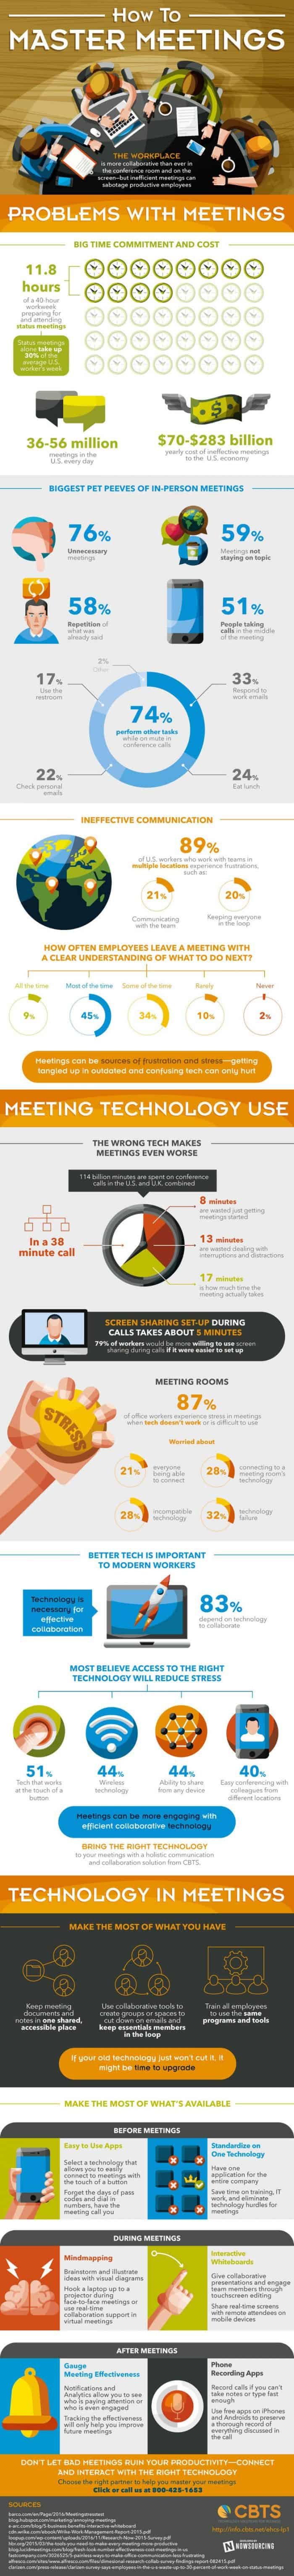 Meetings are mostly ineffective, but solid technology can save them.